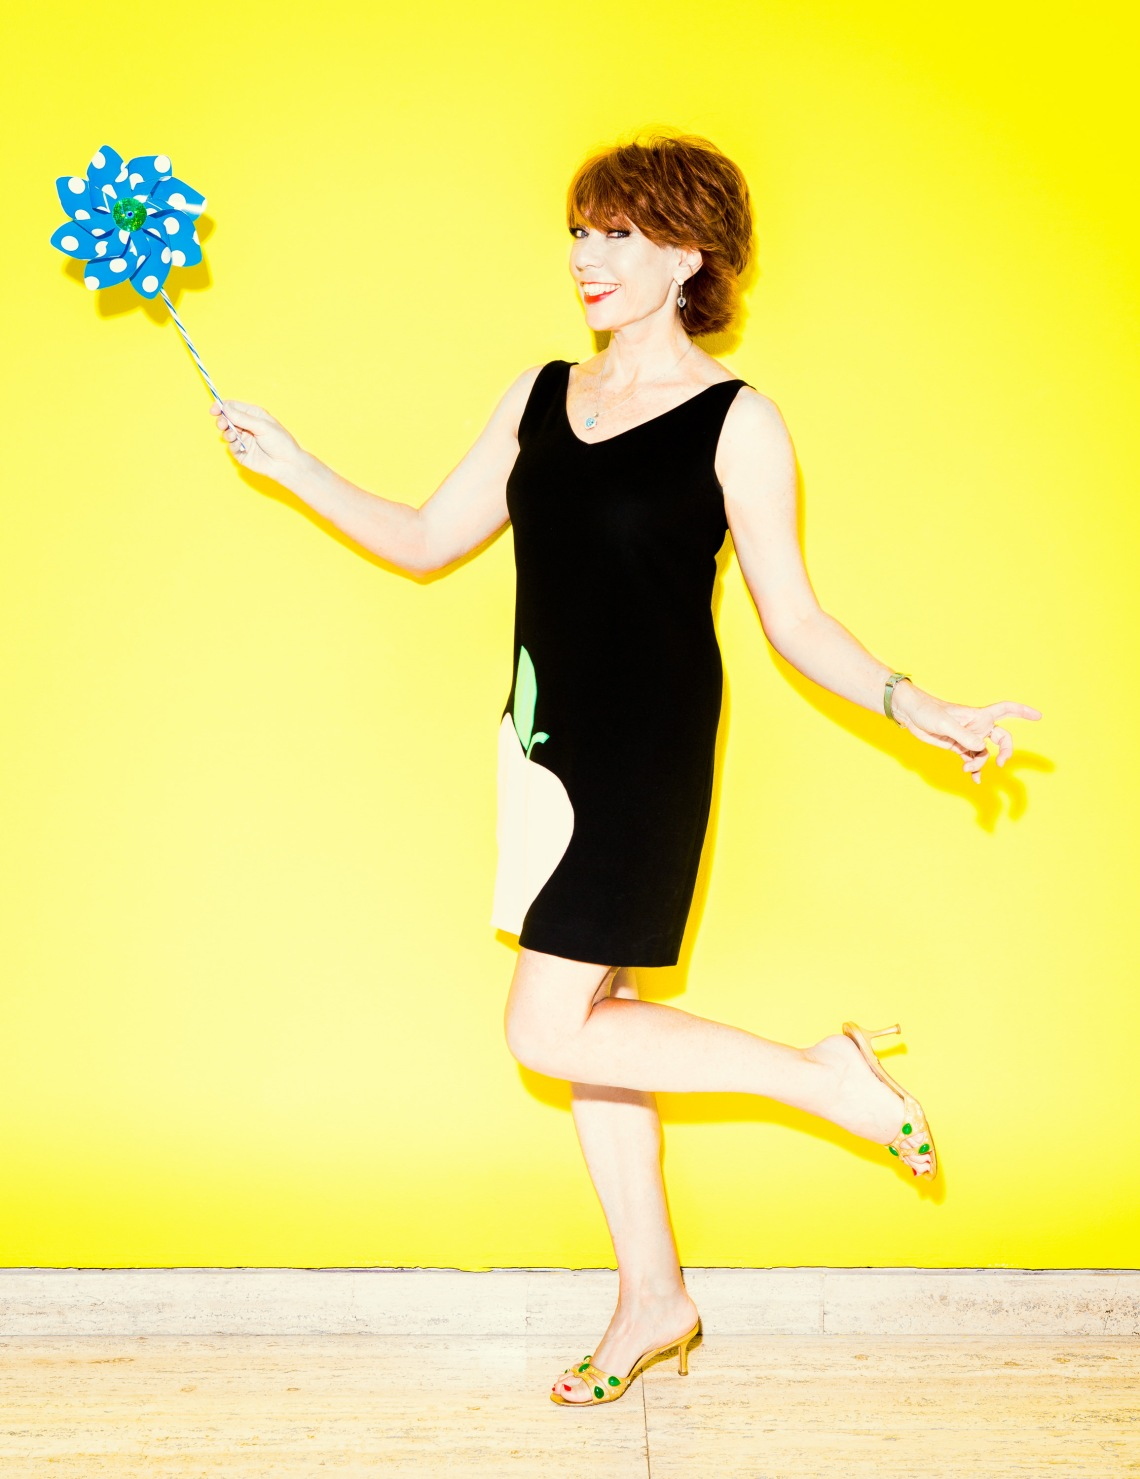 Kathy Lette for The National Treasures Series. Photographer Graham Jepson. Zoë Porter